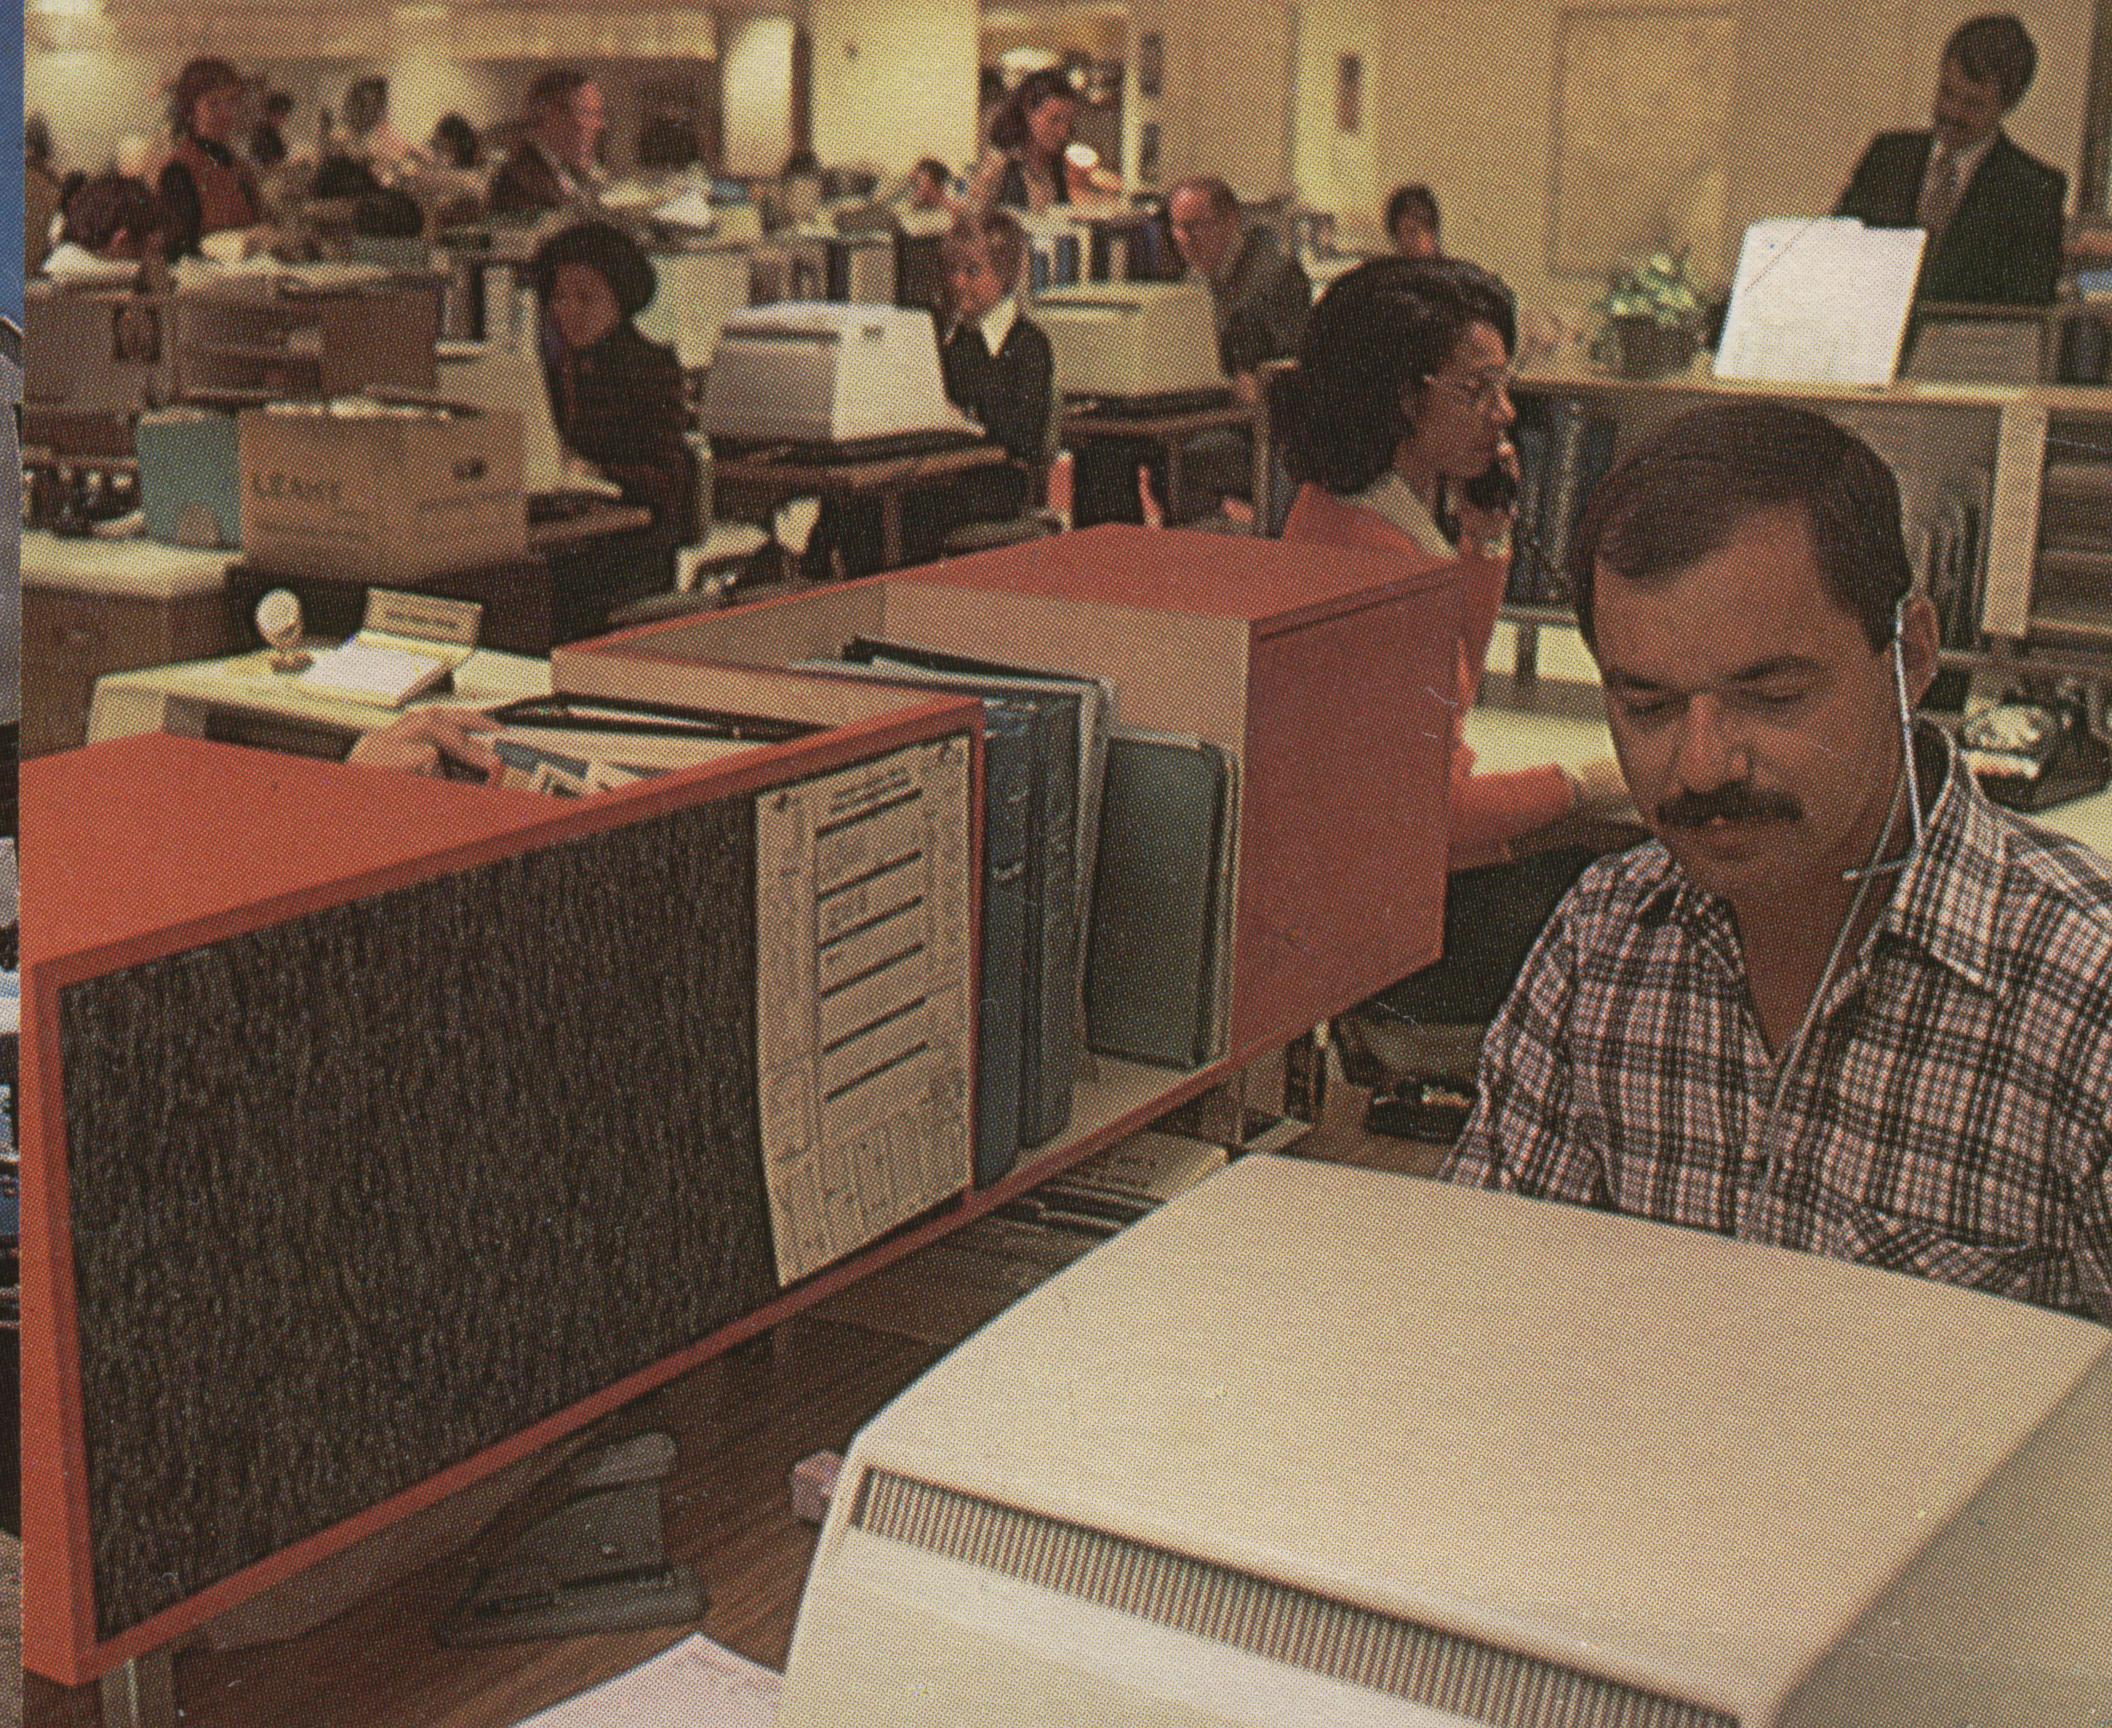 1977 The New York Reservations Office on the Fourth Floor of the Pan Am Building.